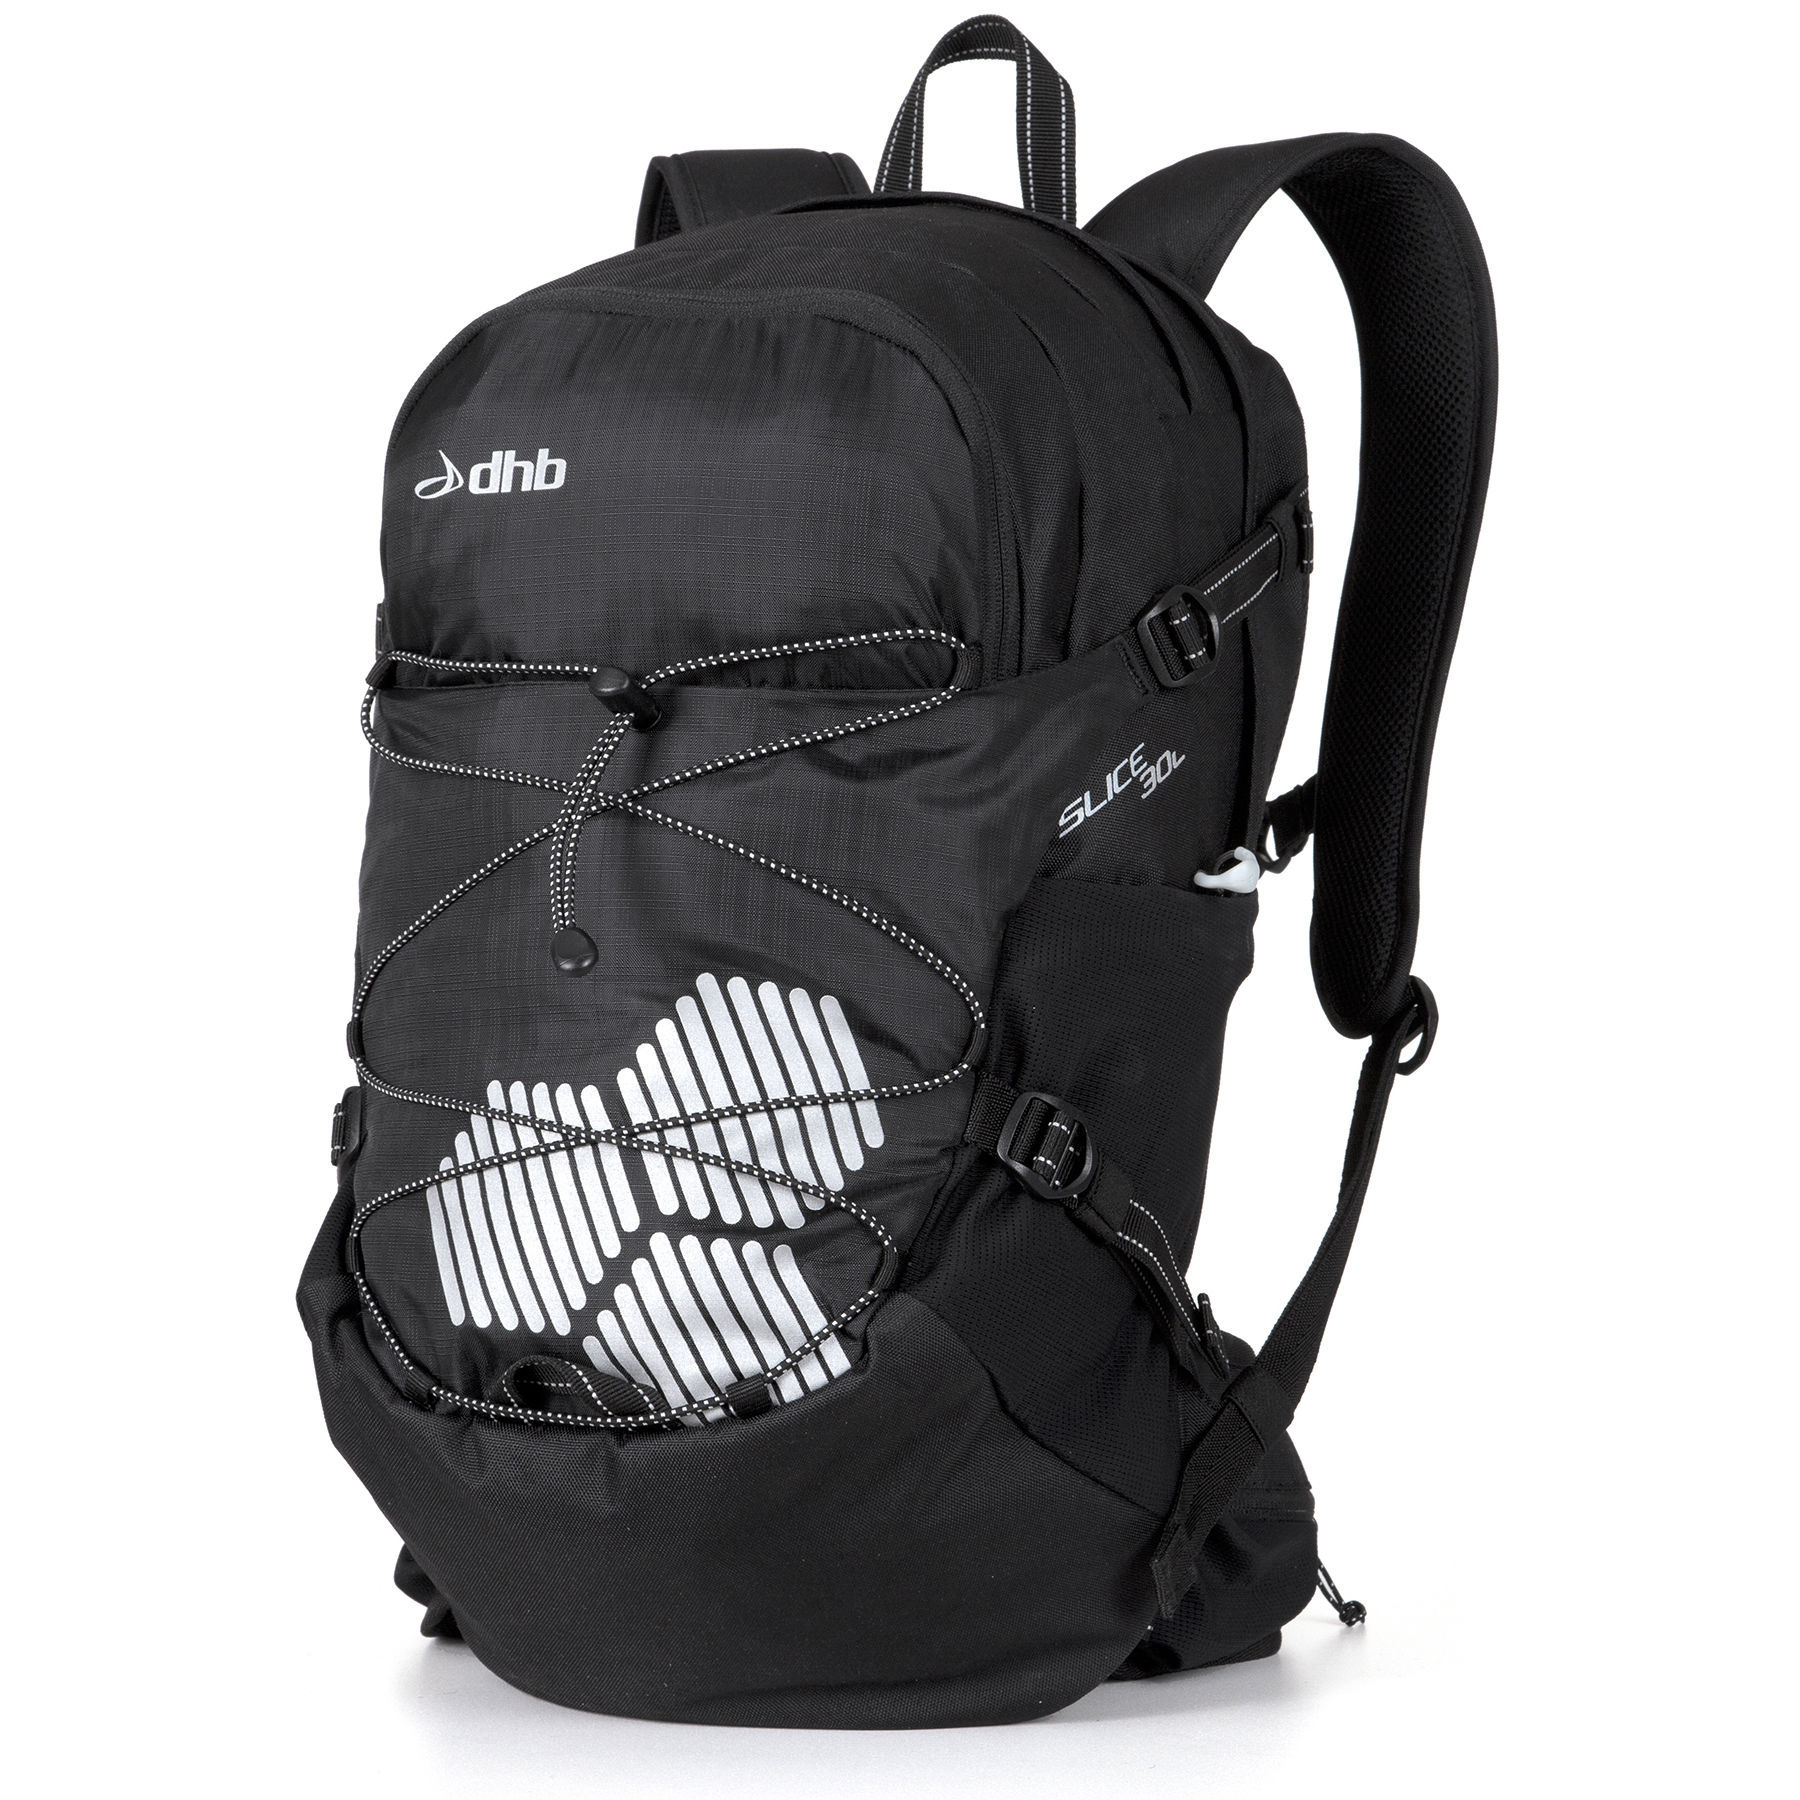 Best 30L Backpack iiabuBC5